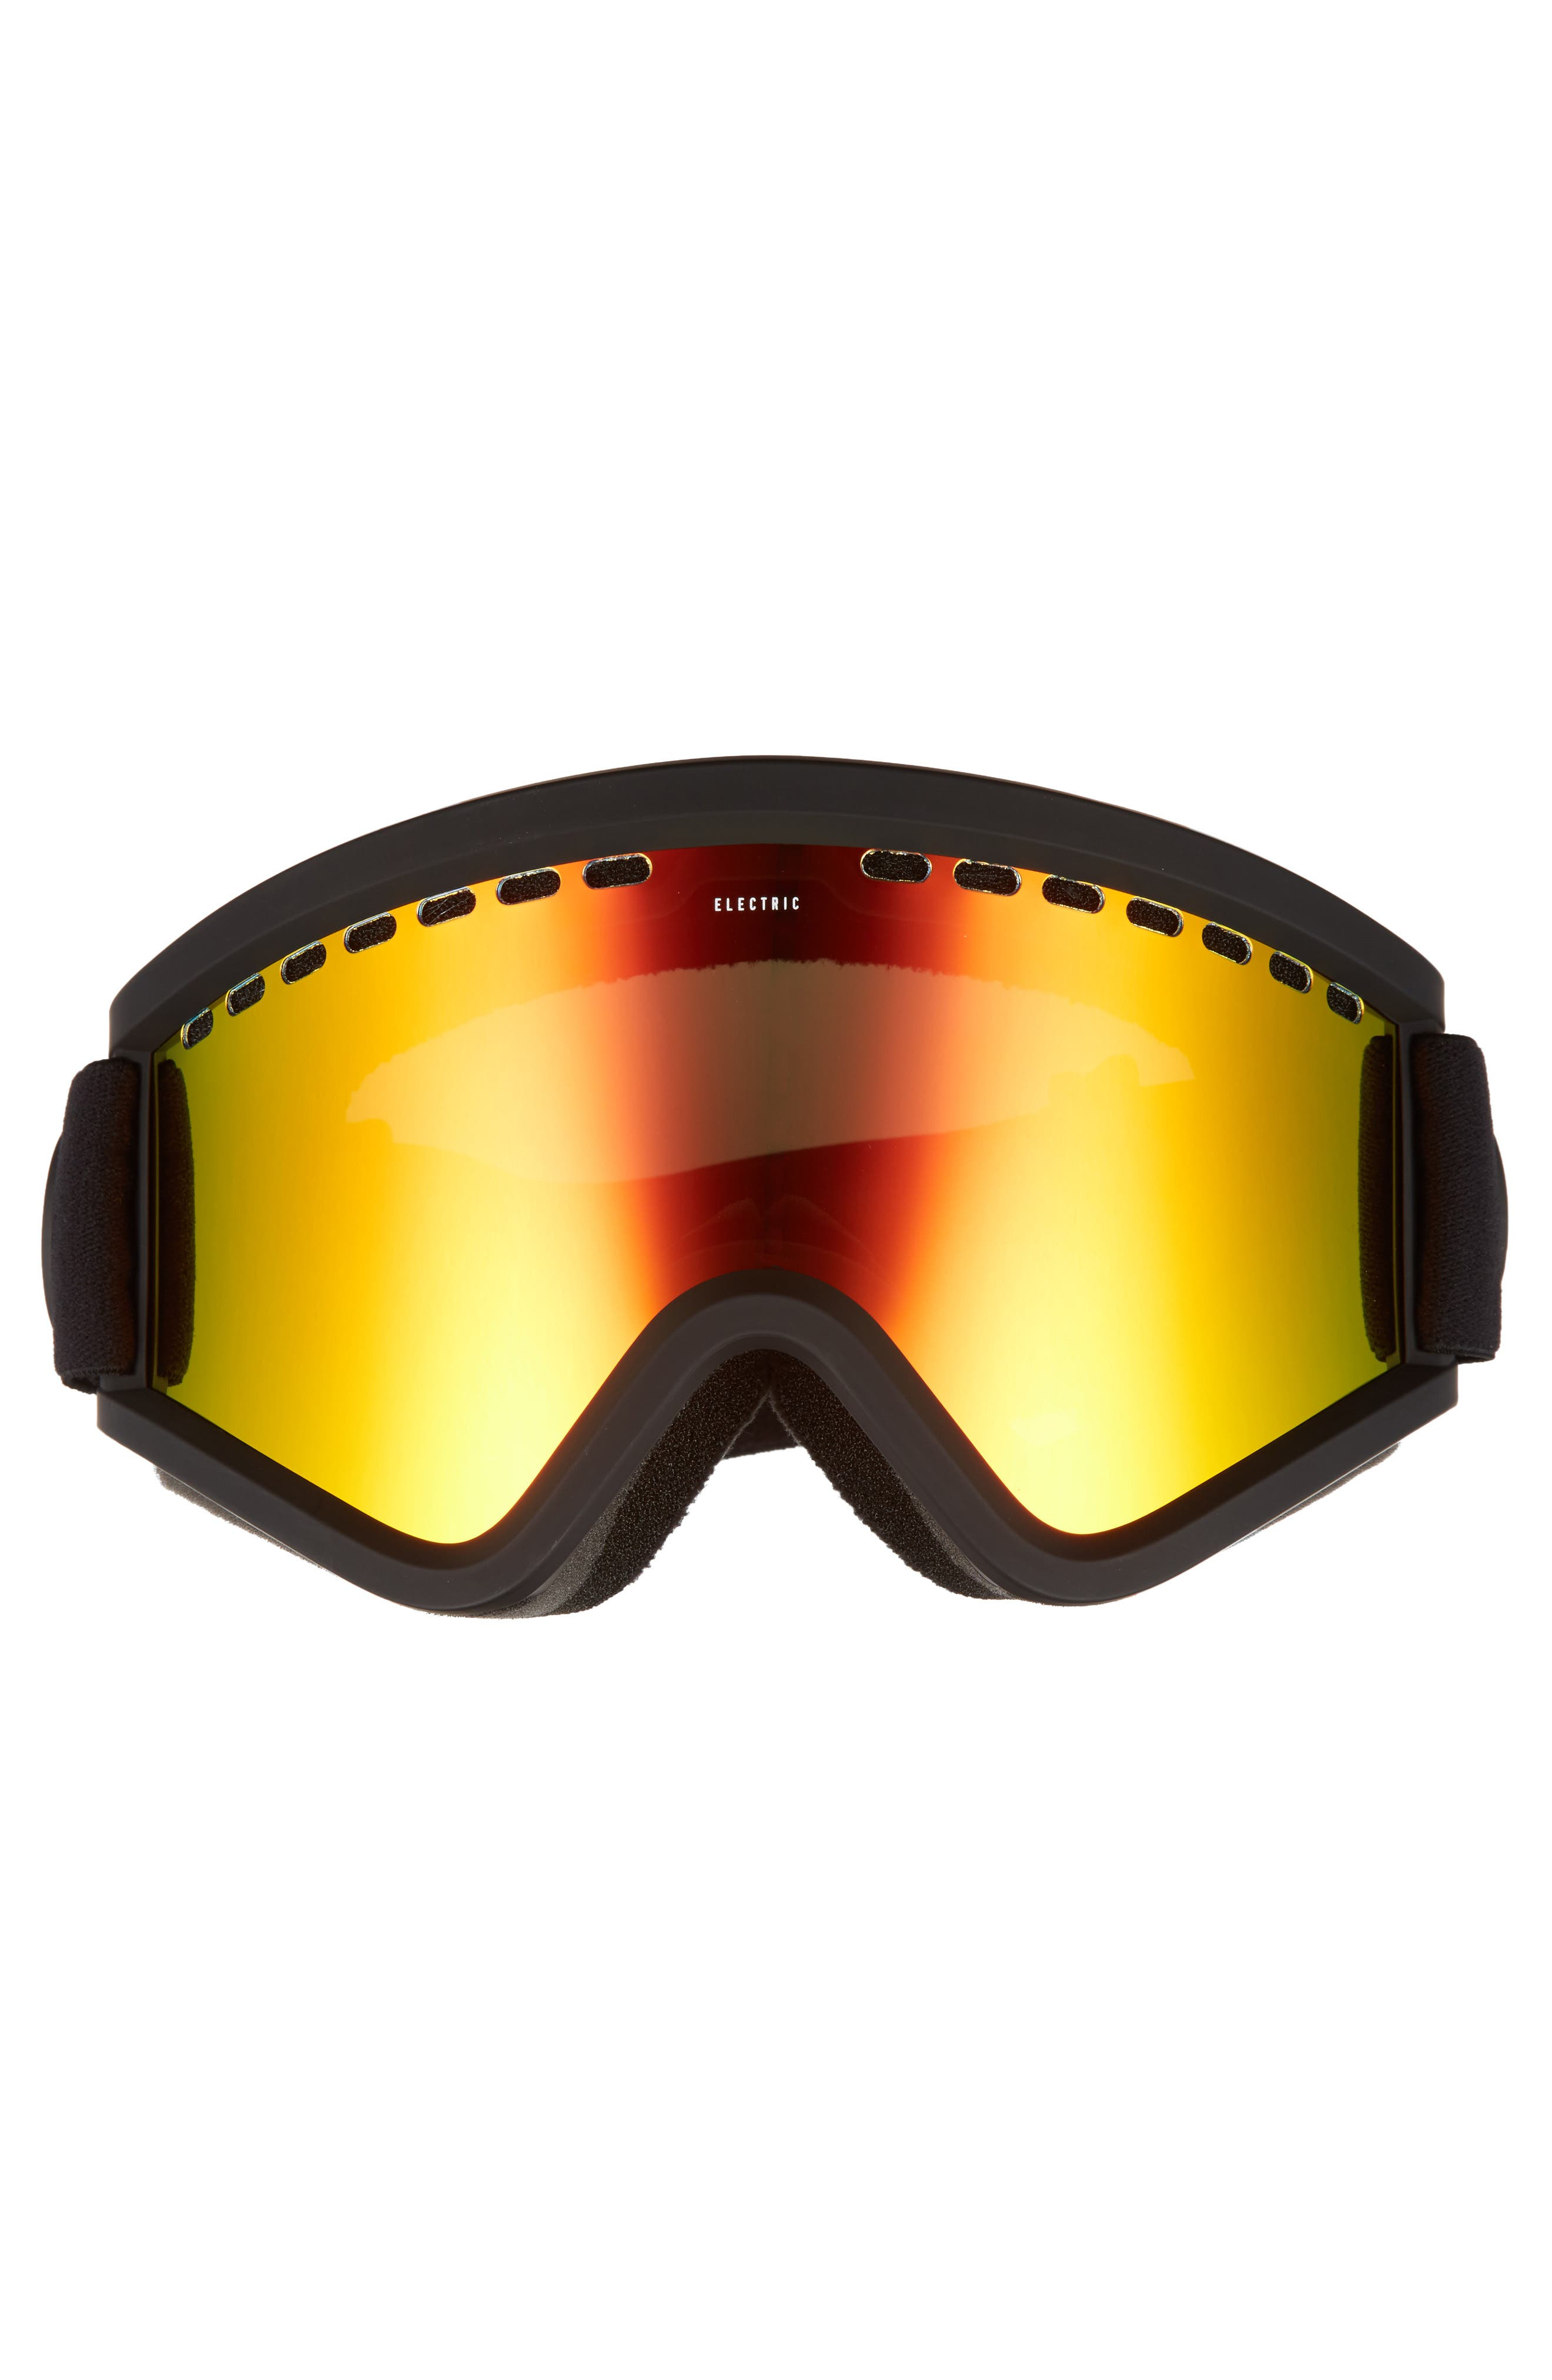 EGV Snow Goggles,                             Alternate thumbnail 8, color,